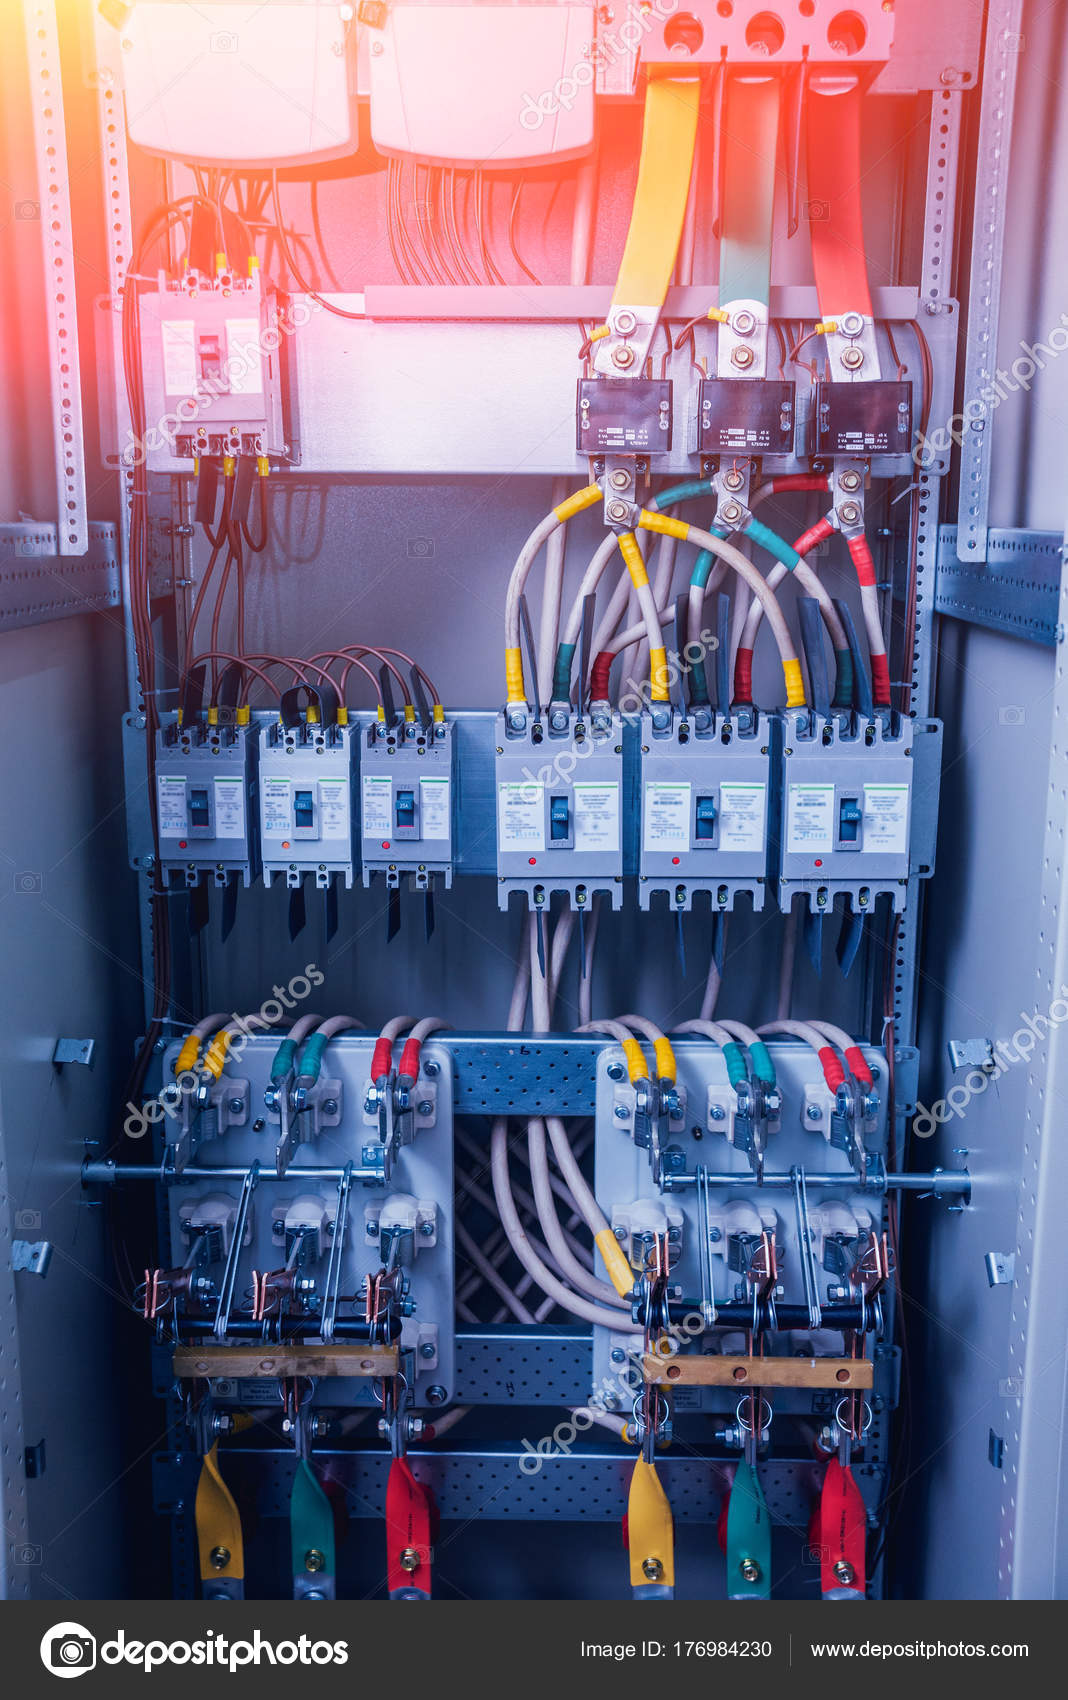 Wires Switches Electric Box Electrical Panel Fuses Contactors Contactor Wiring Stock Photo